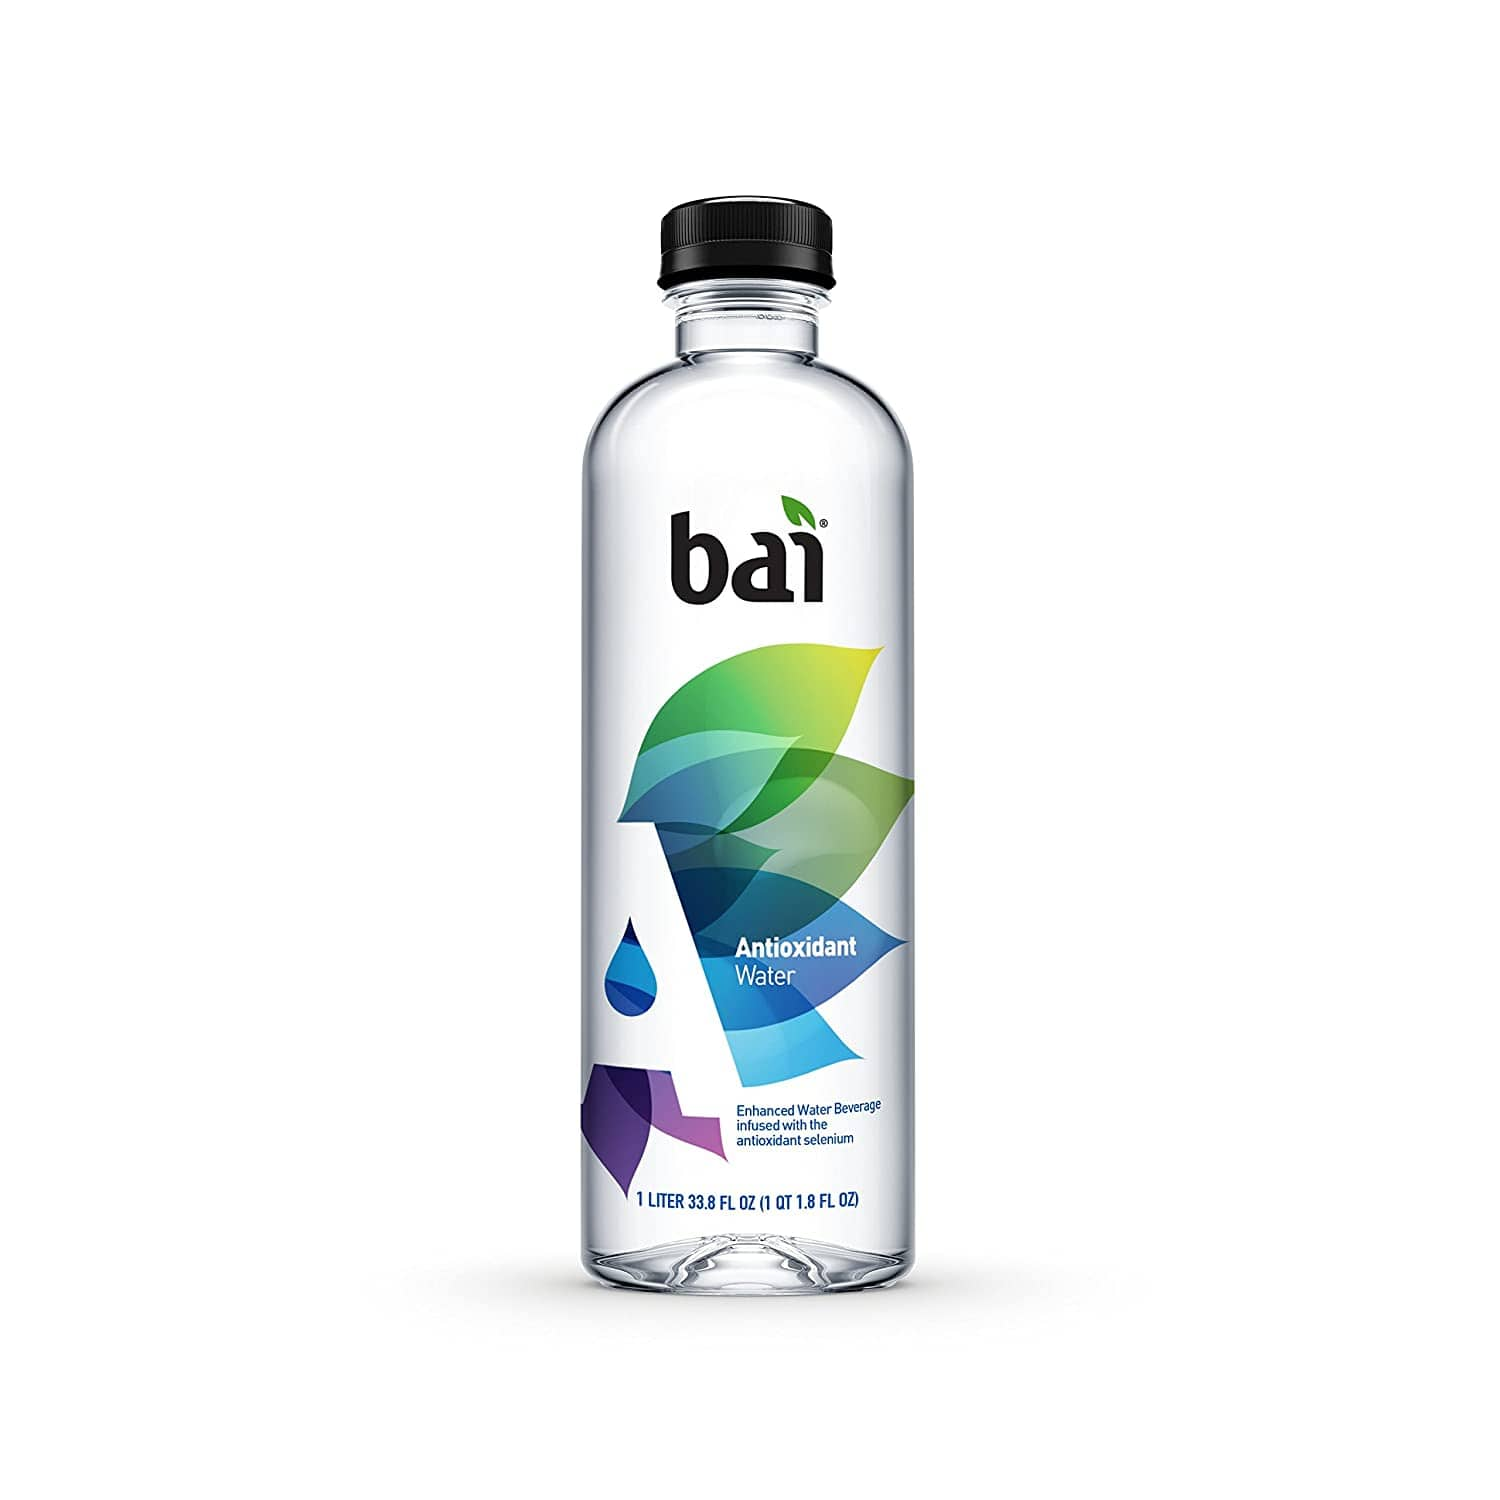 12-Pack 33.8-Oz Bai Antioxidant Water (w/ Selenium) $11.40 w/ S&S + Free S&H w/ Prime or $25+